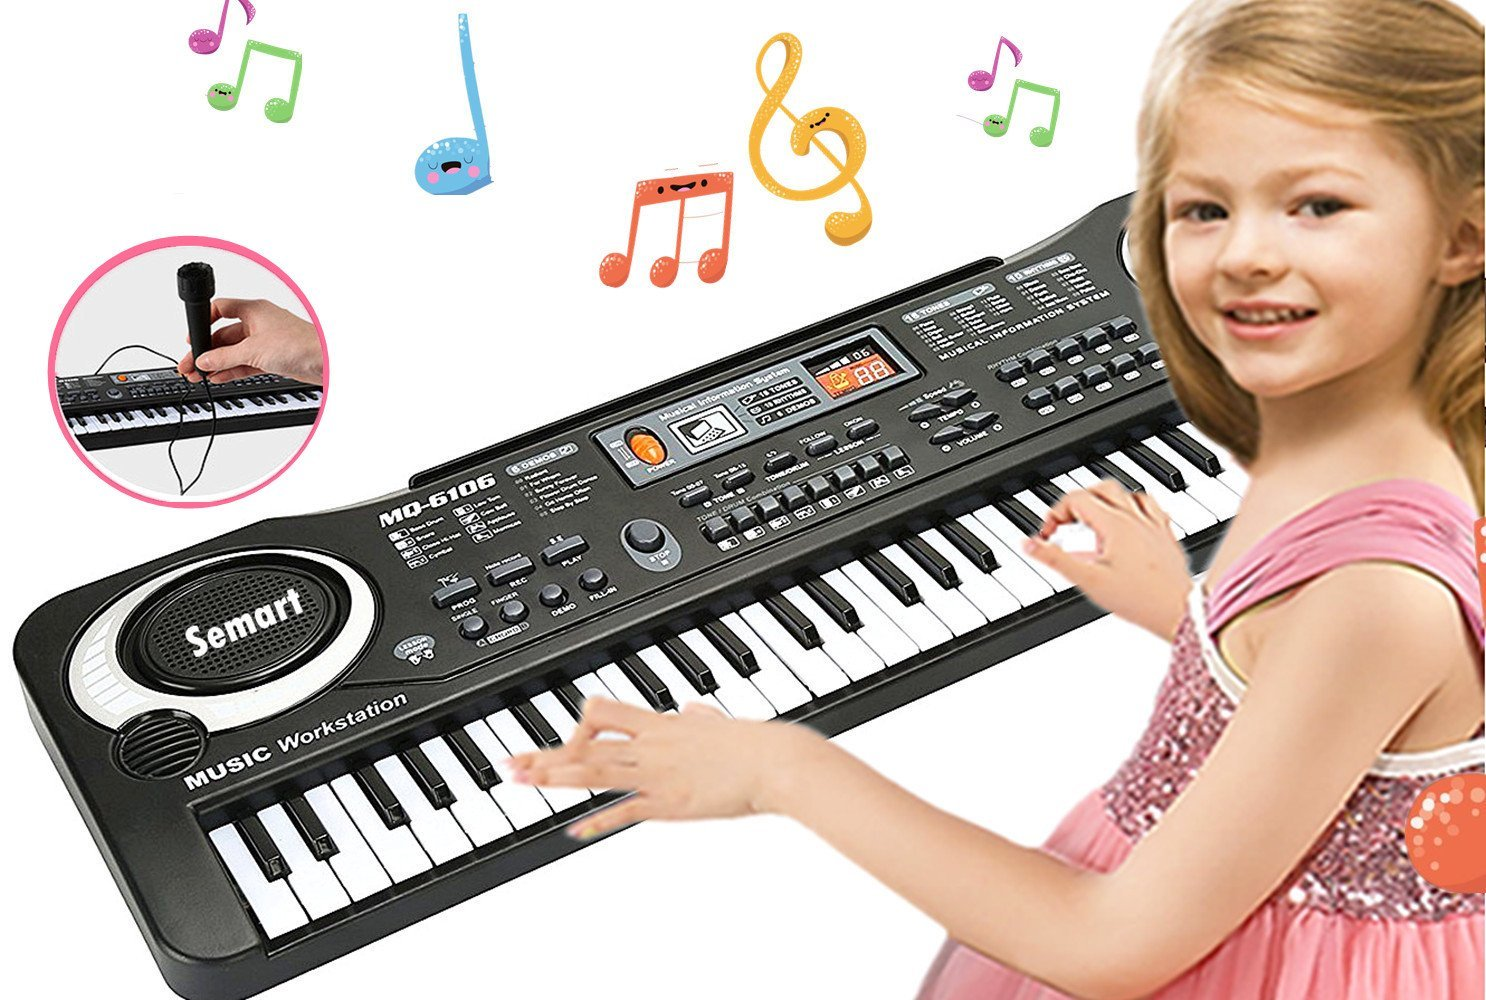 Piano Keyboard Music Digital Piano Electric Keyboards for kids Musical Instrument USB multi-function w/Microphone Weighted keys Birthday Christmas Festival Gift for children GIVISION